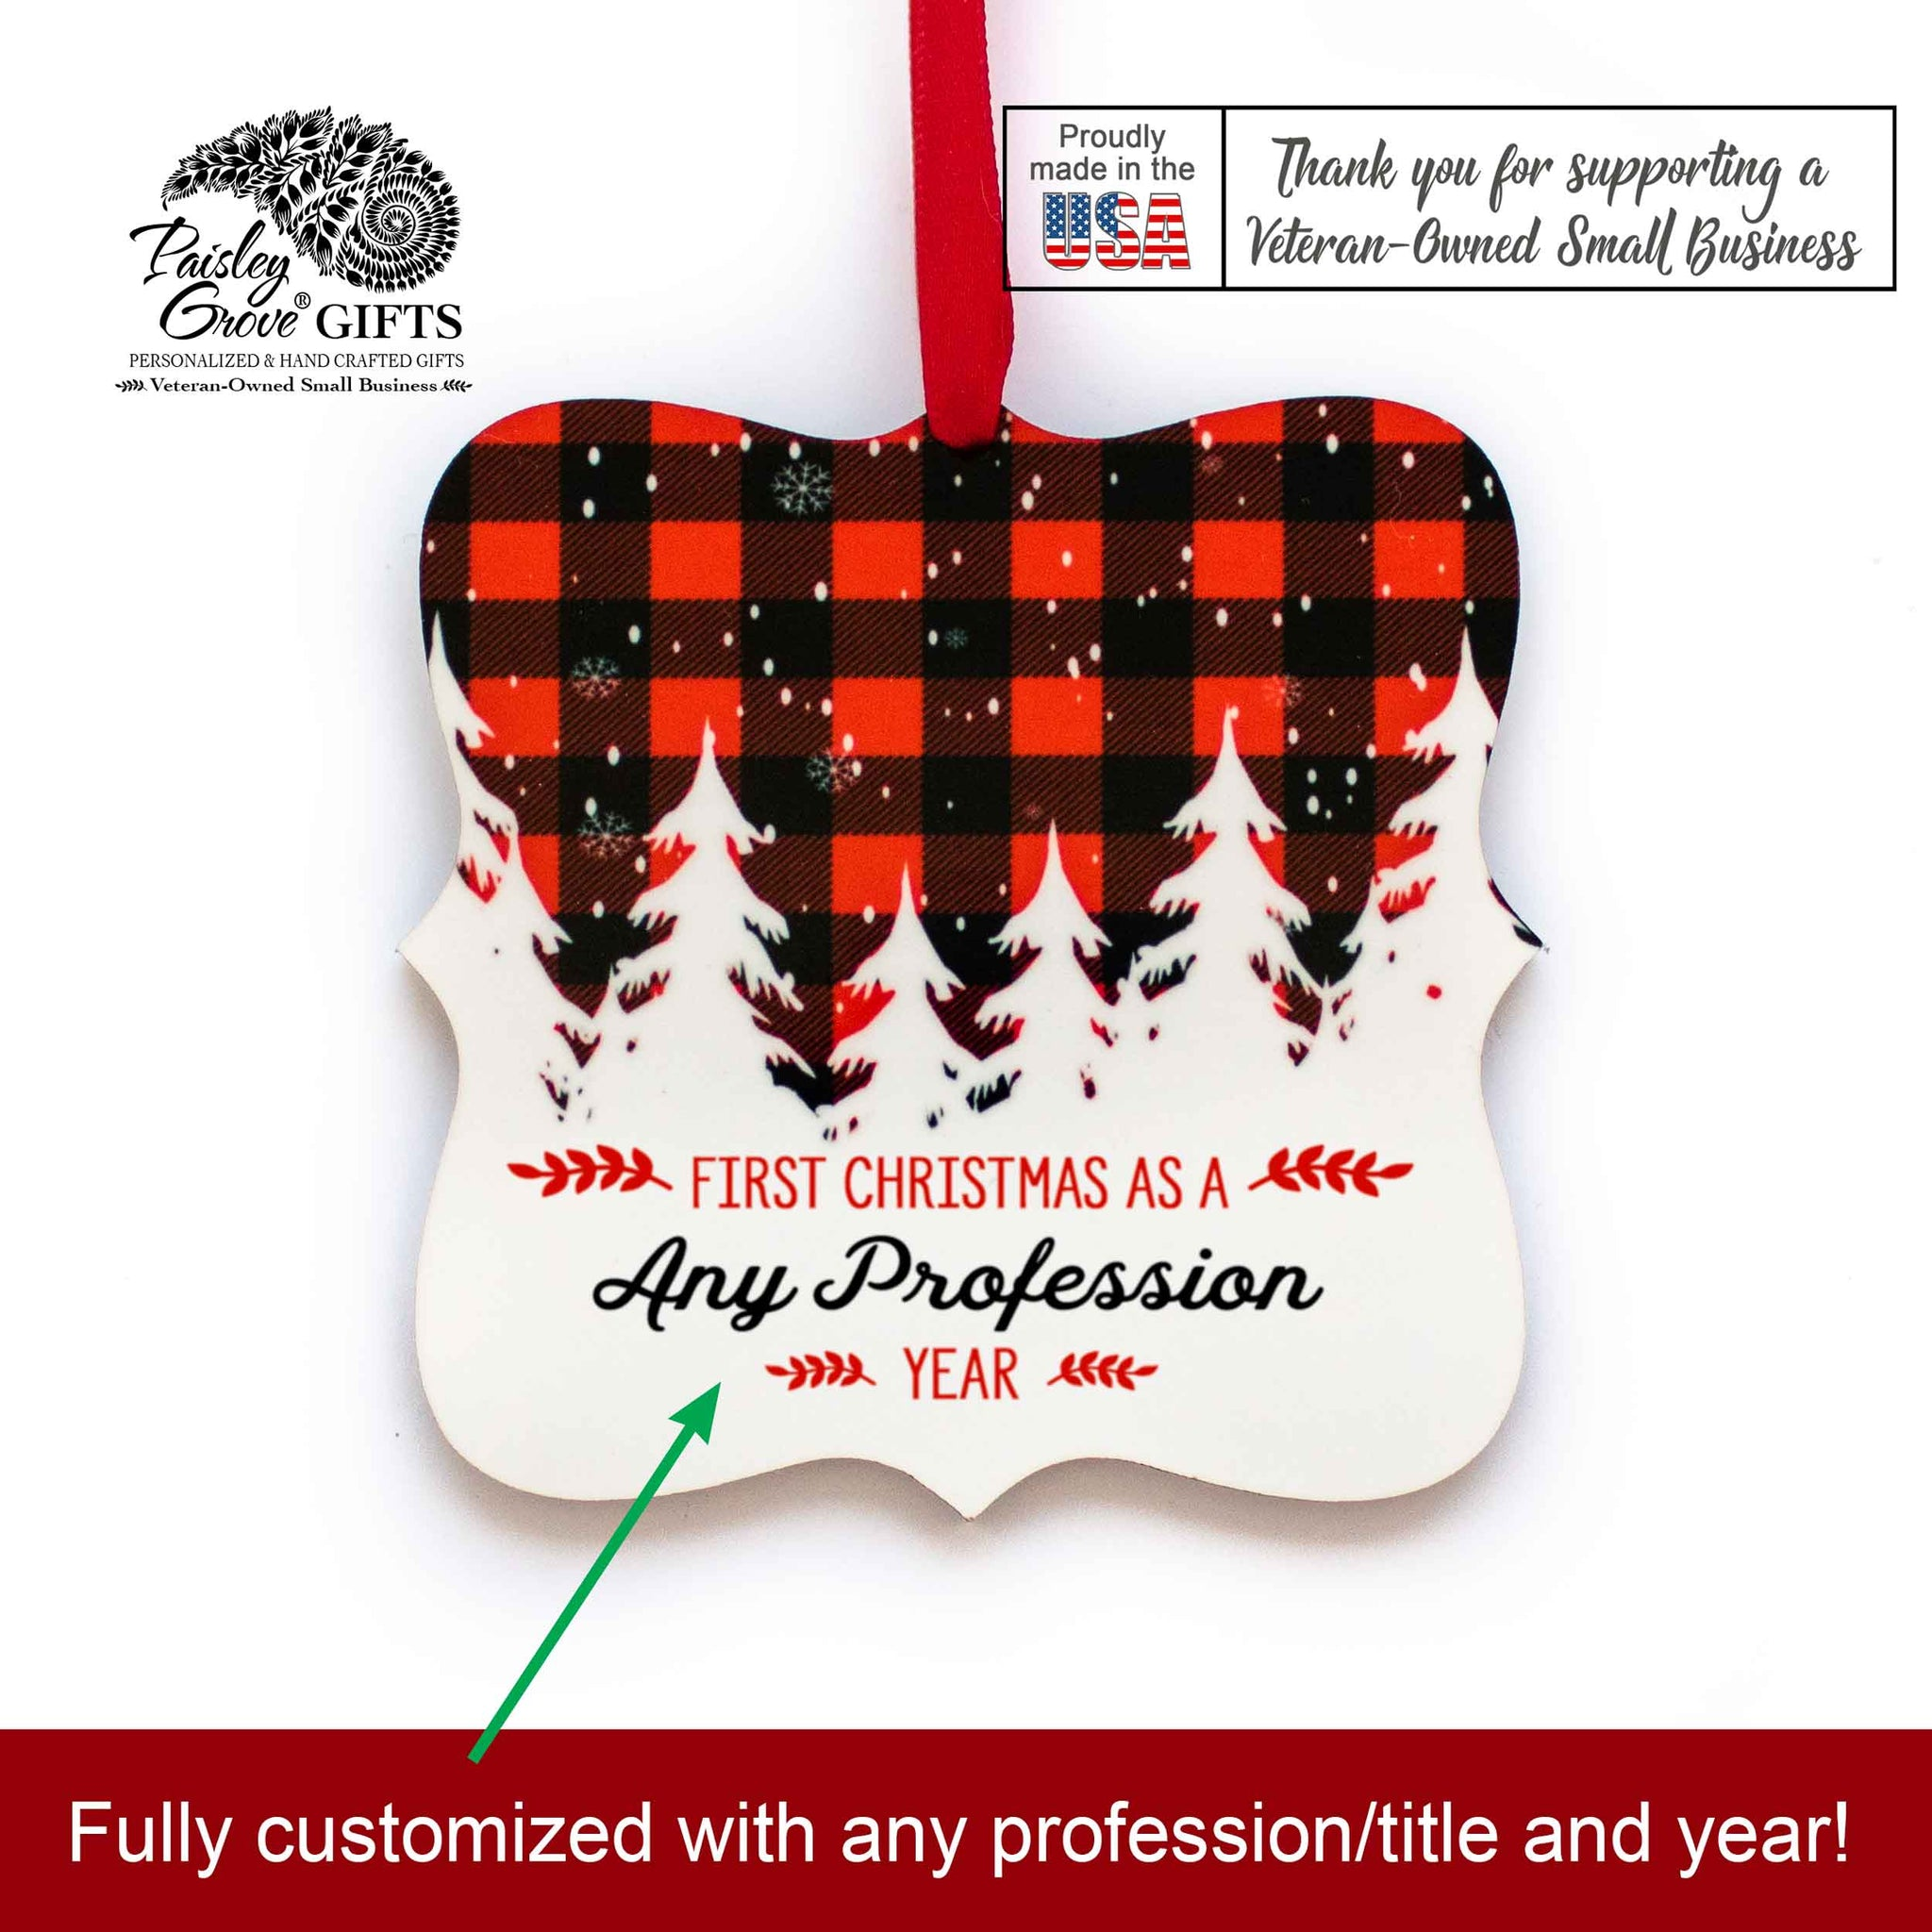 CopyrightPaisleyGroveGIFTS S502k Buffalo Plaid Customized Christmas Ornament Gift Made in the USA